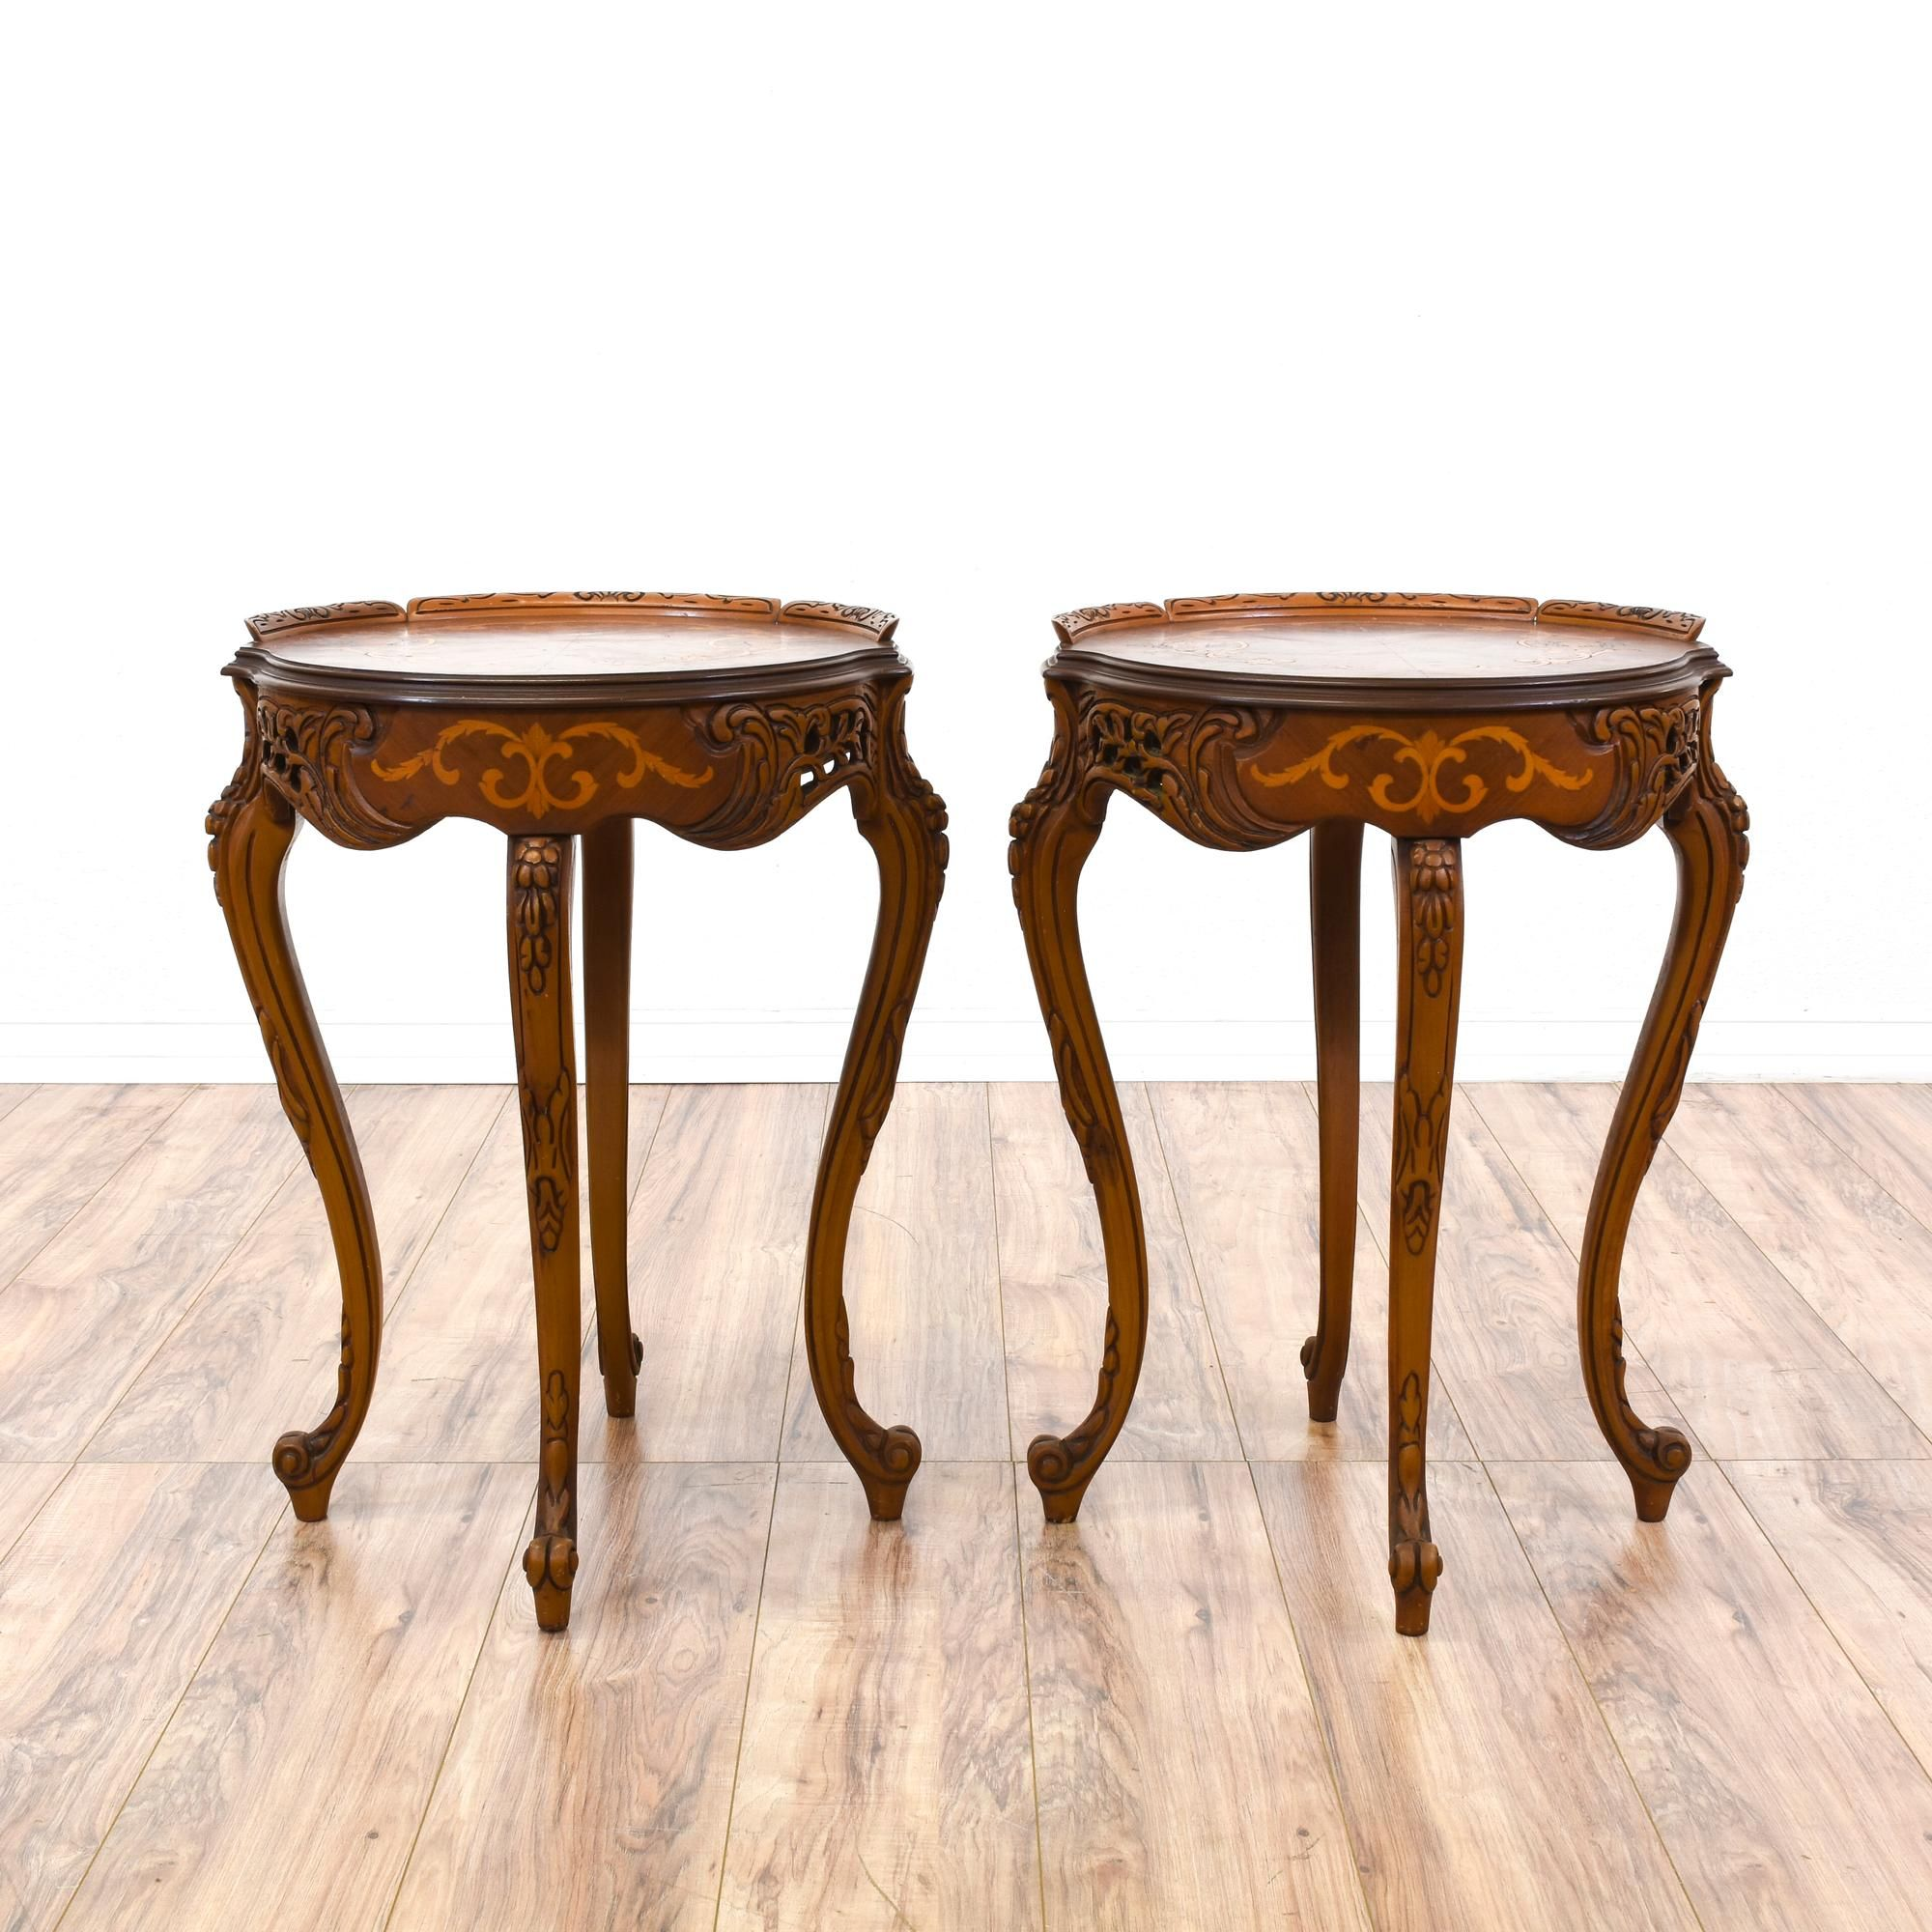 Victorian End Table These victorian end tables are featured in a solid wood with a gorgeous  cherry finish. These ornate side tables feature intricate carved floral  details, ...